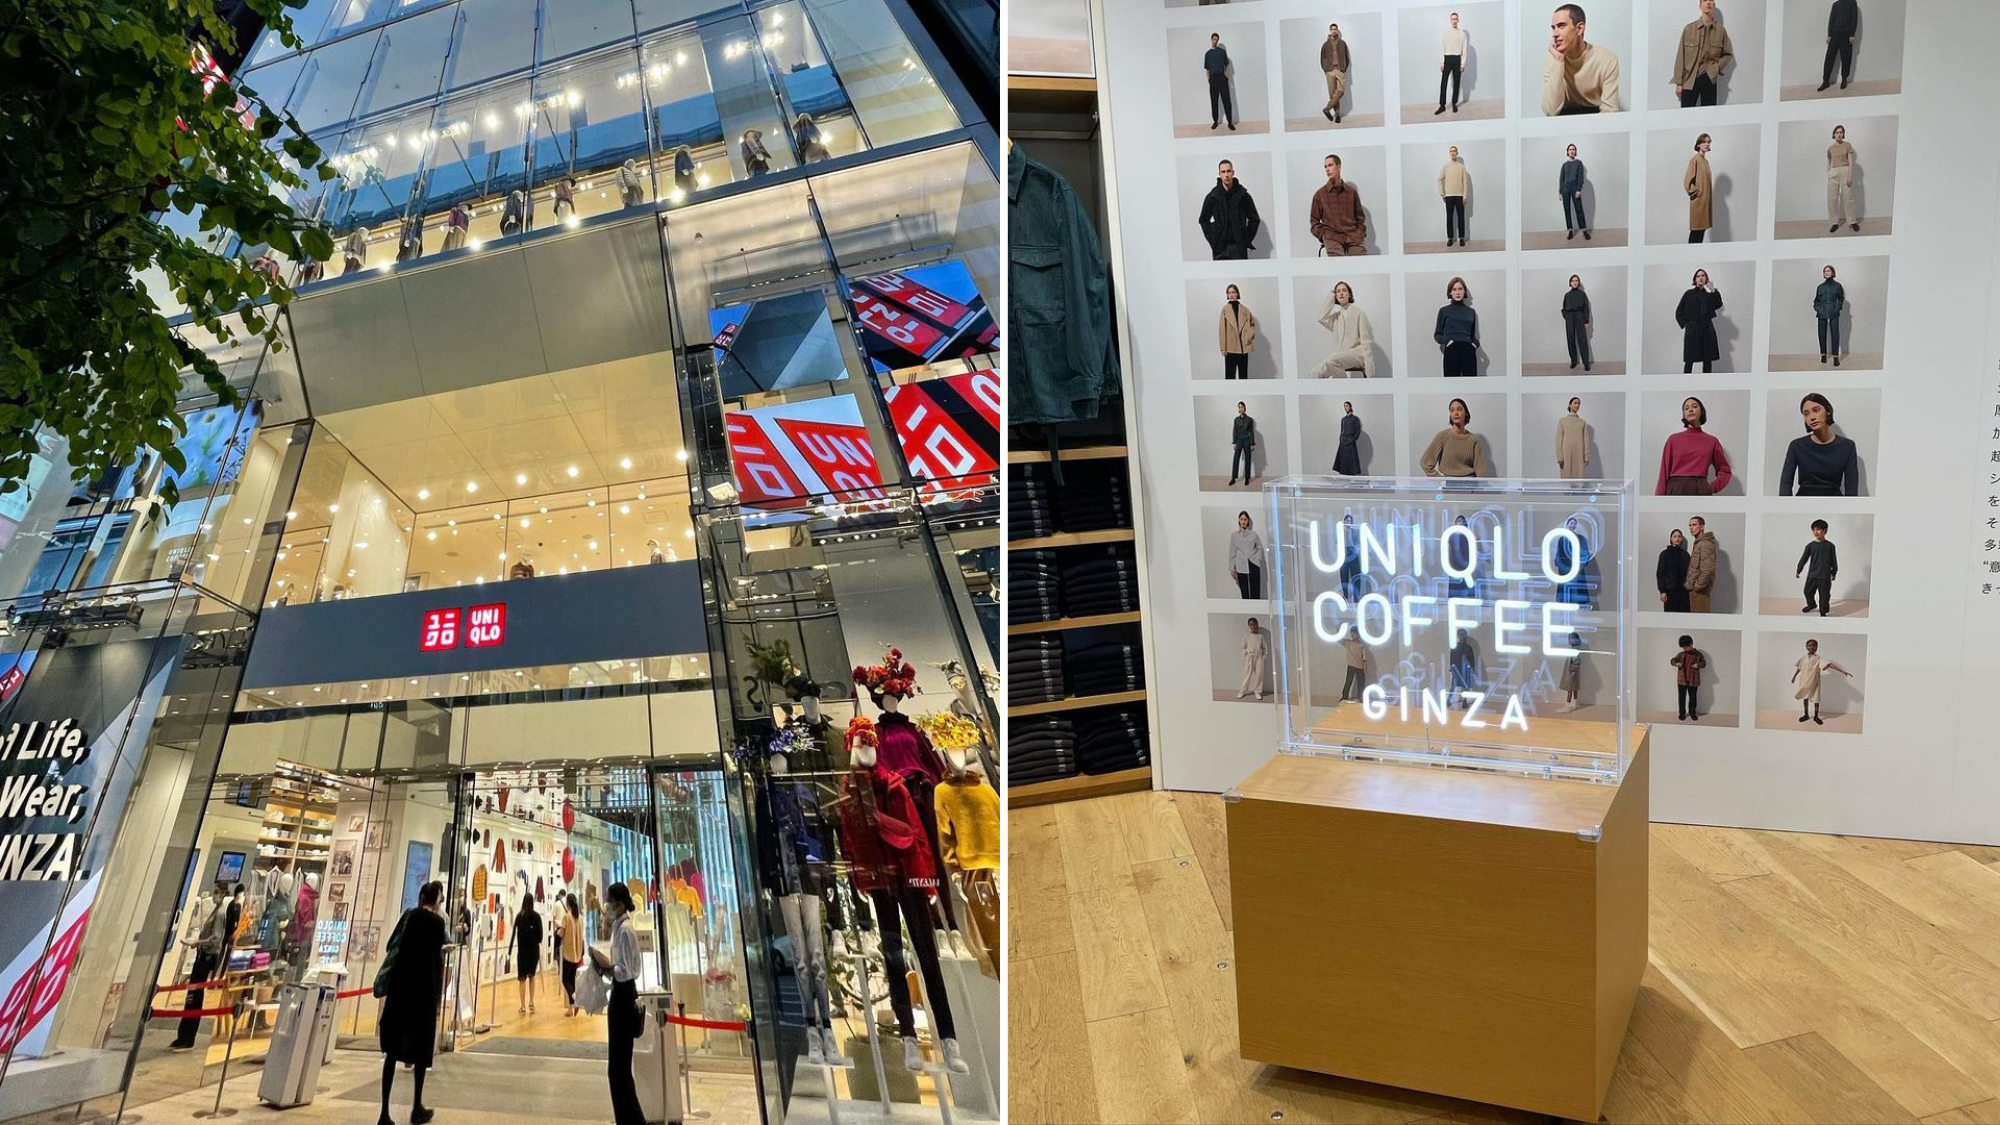 Branching out UNIQLO opens first café in Tokyo photo from Travelko_gourmet